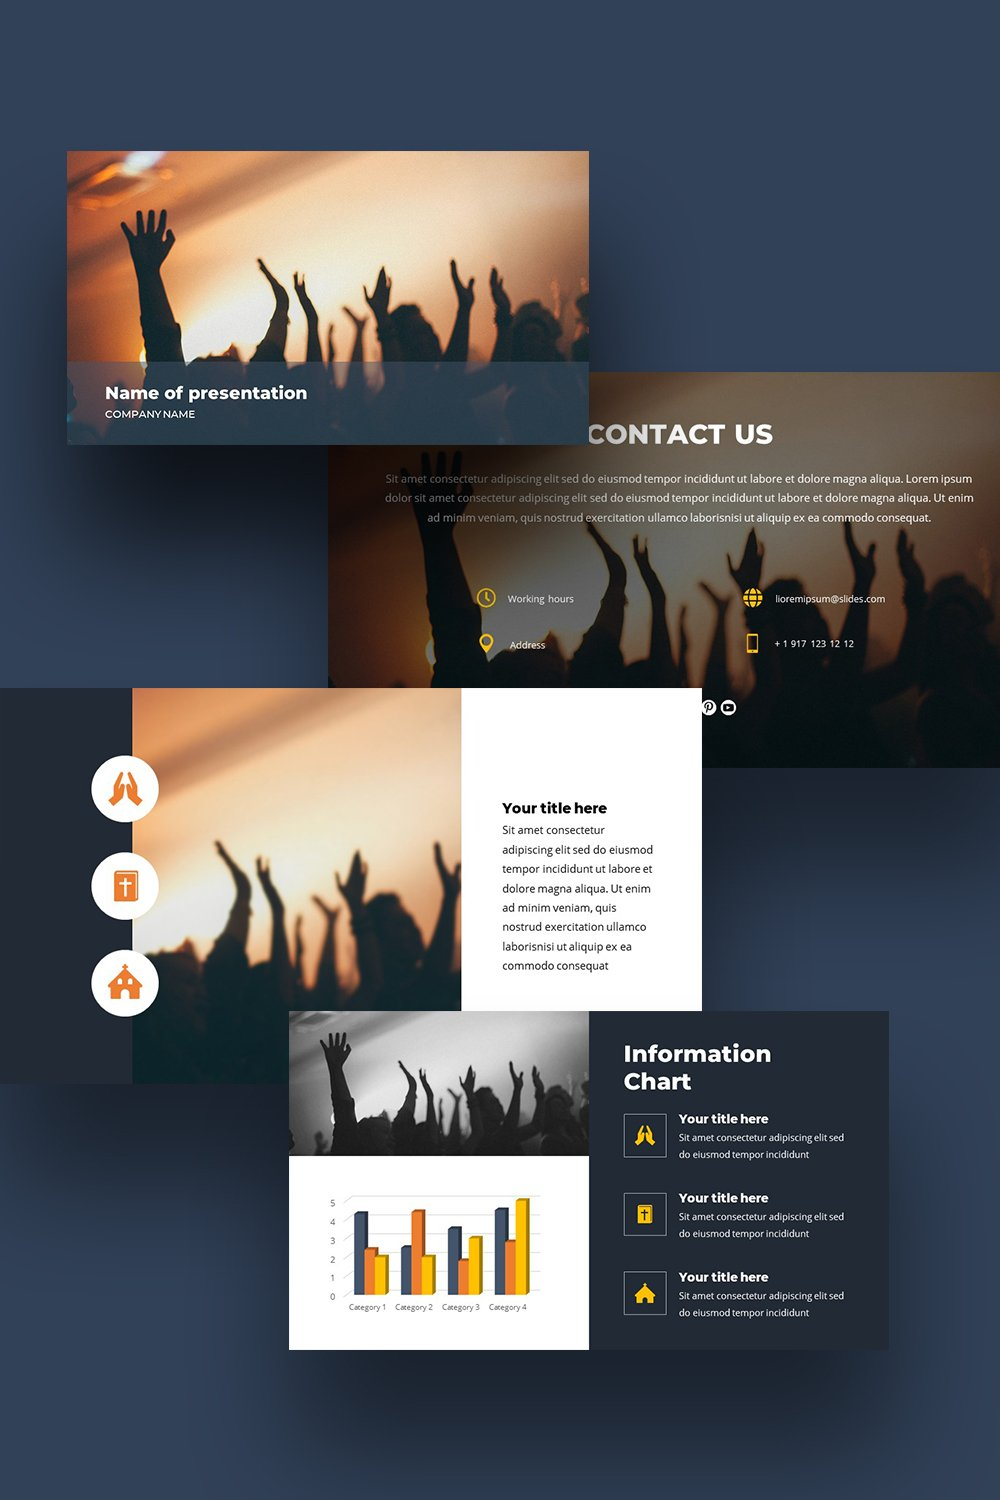 Soul is a free Powerpoint Background template for personal and commercial purposes.